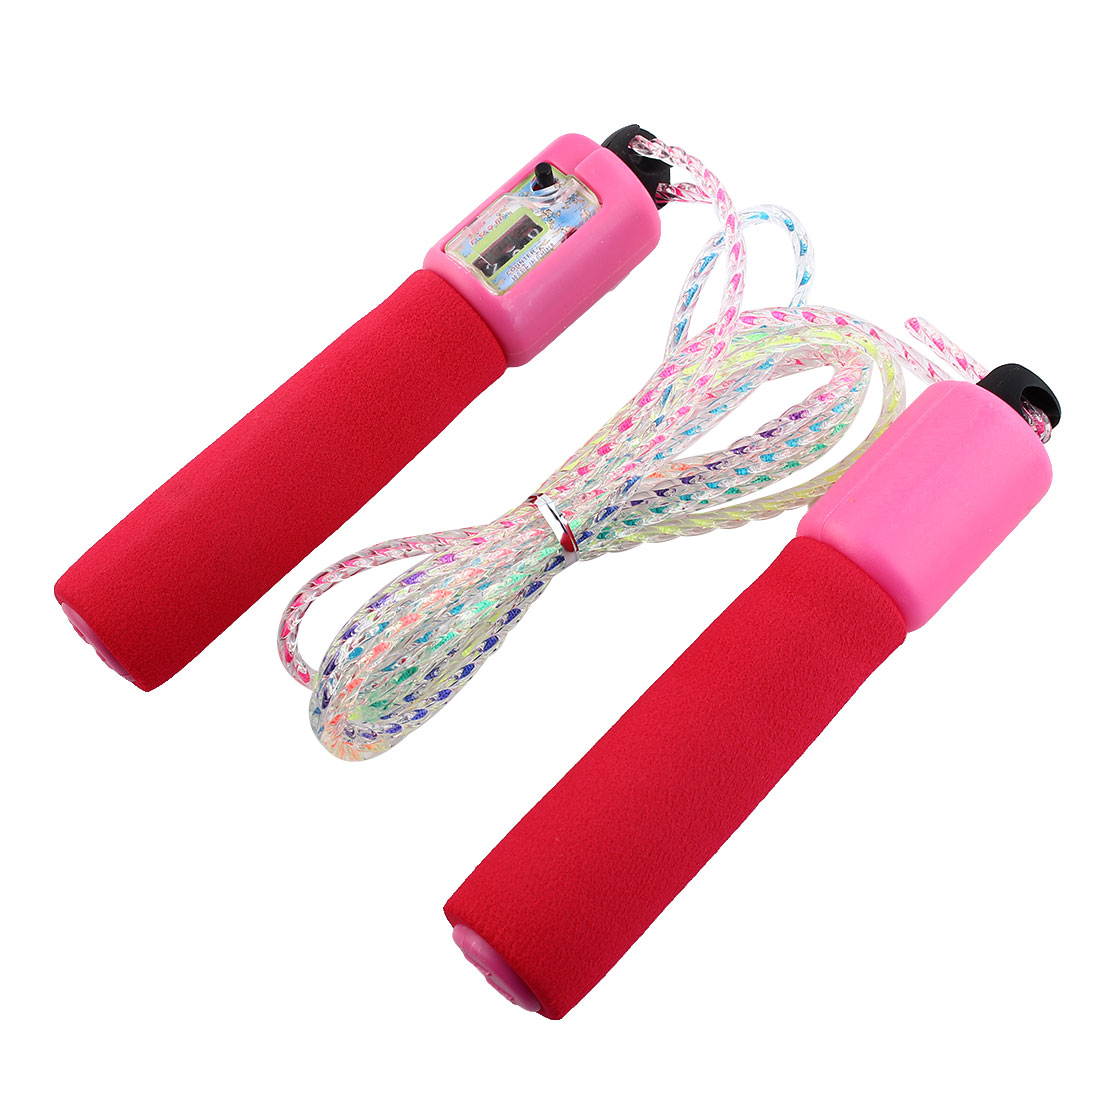 Red Foam Coated Handle Amaranth Resettable Counter Jump Rope